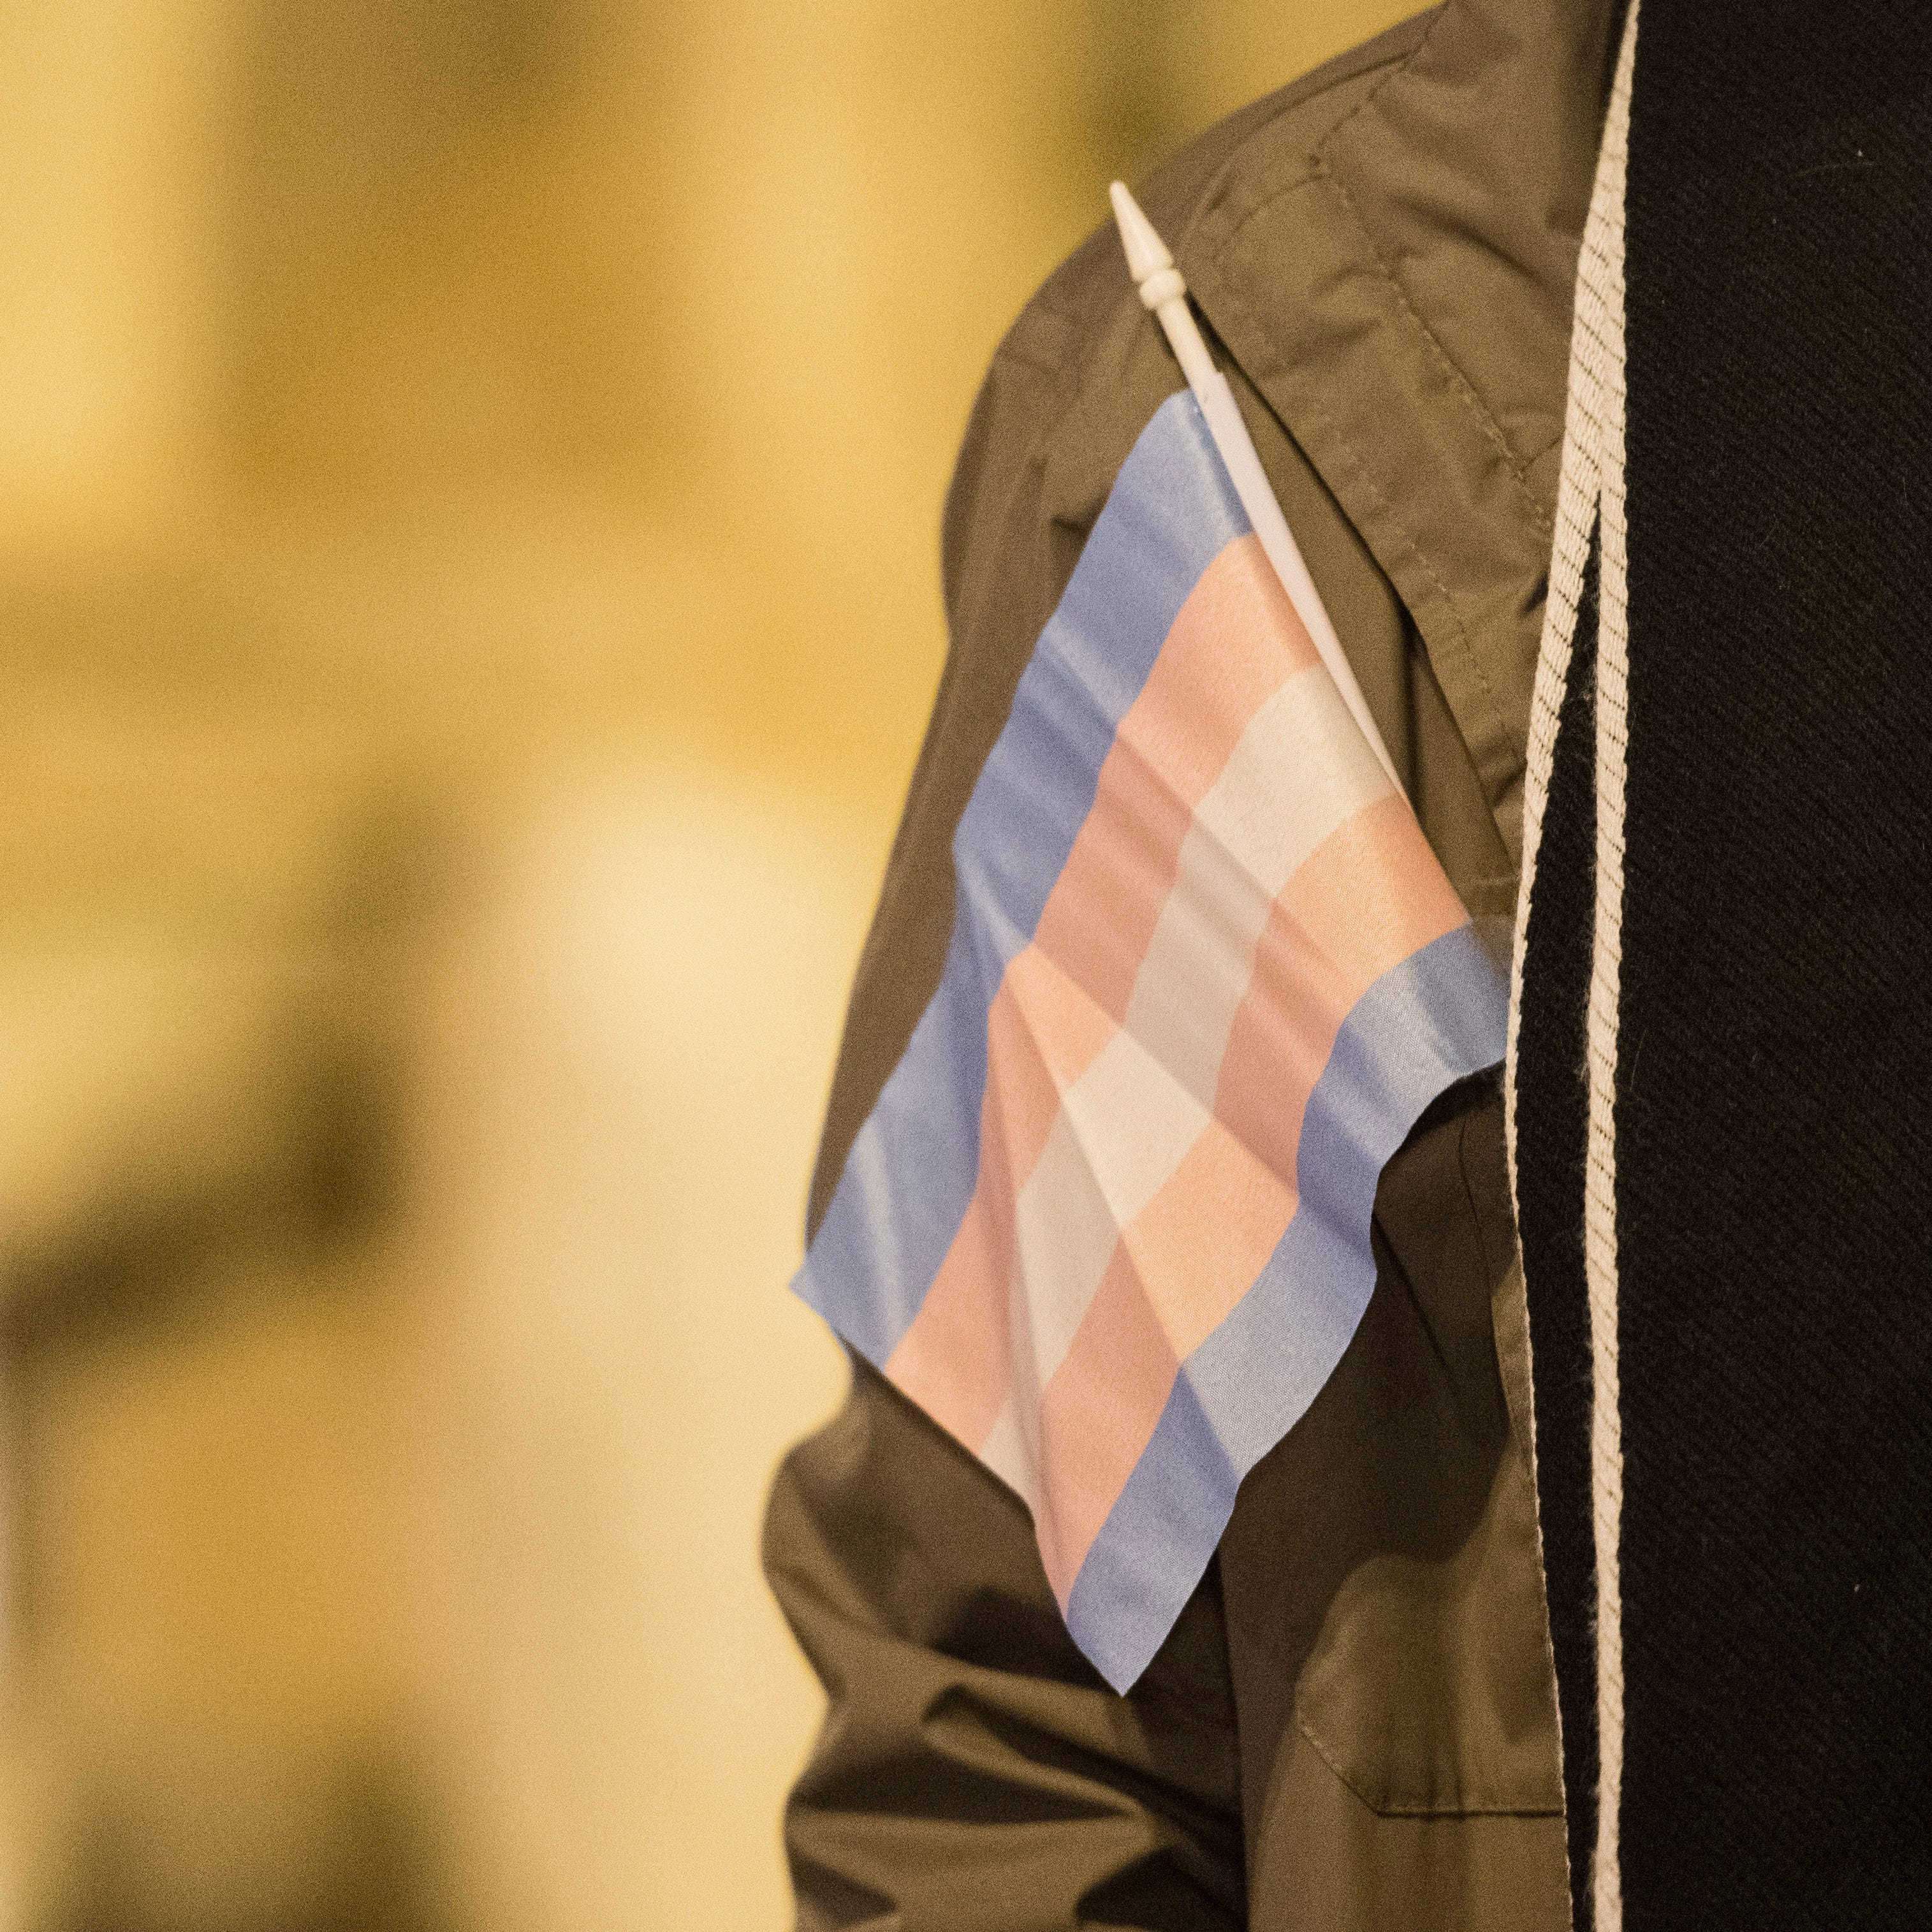 The transgender flag hangs out of a coat pocket during the candlelight vigil for Transgender day of Remembrance on Haynie's Corner Tuesday, Nov. 20, 2018.